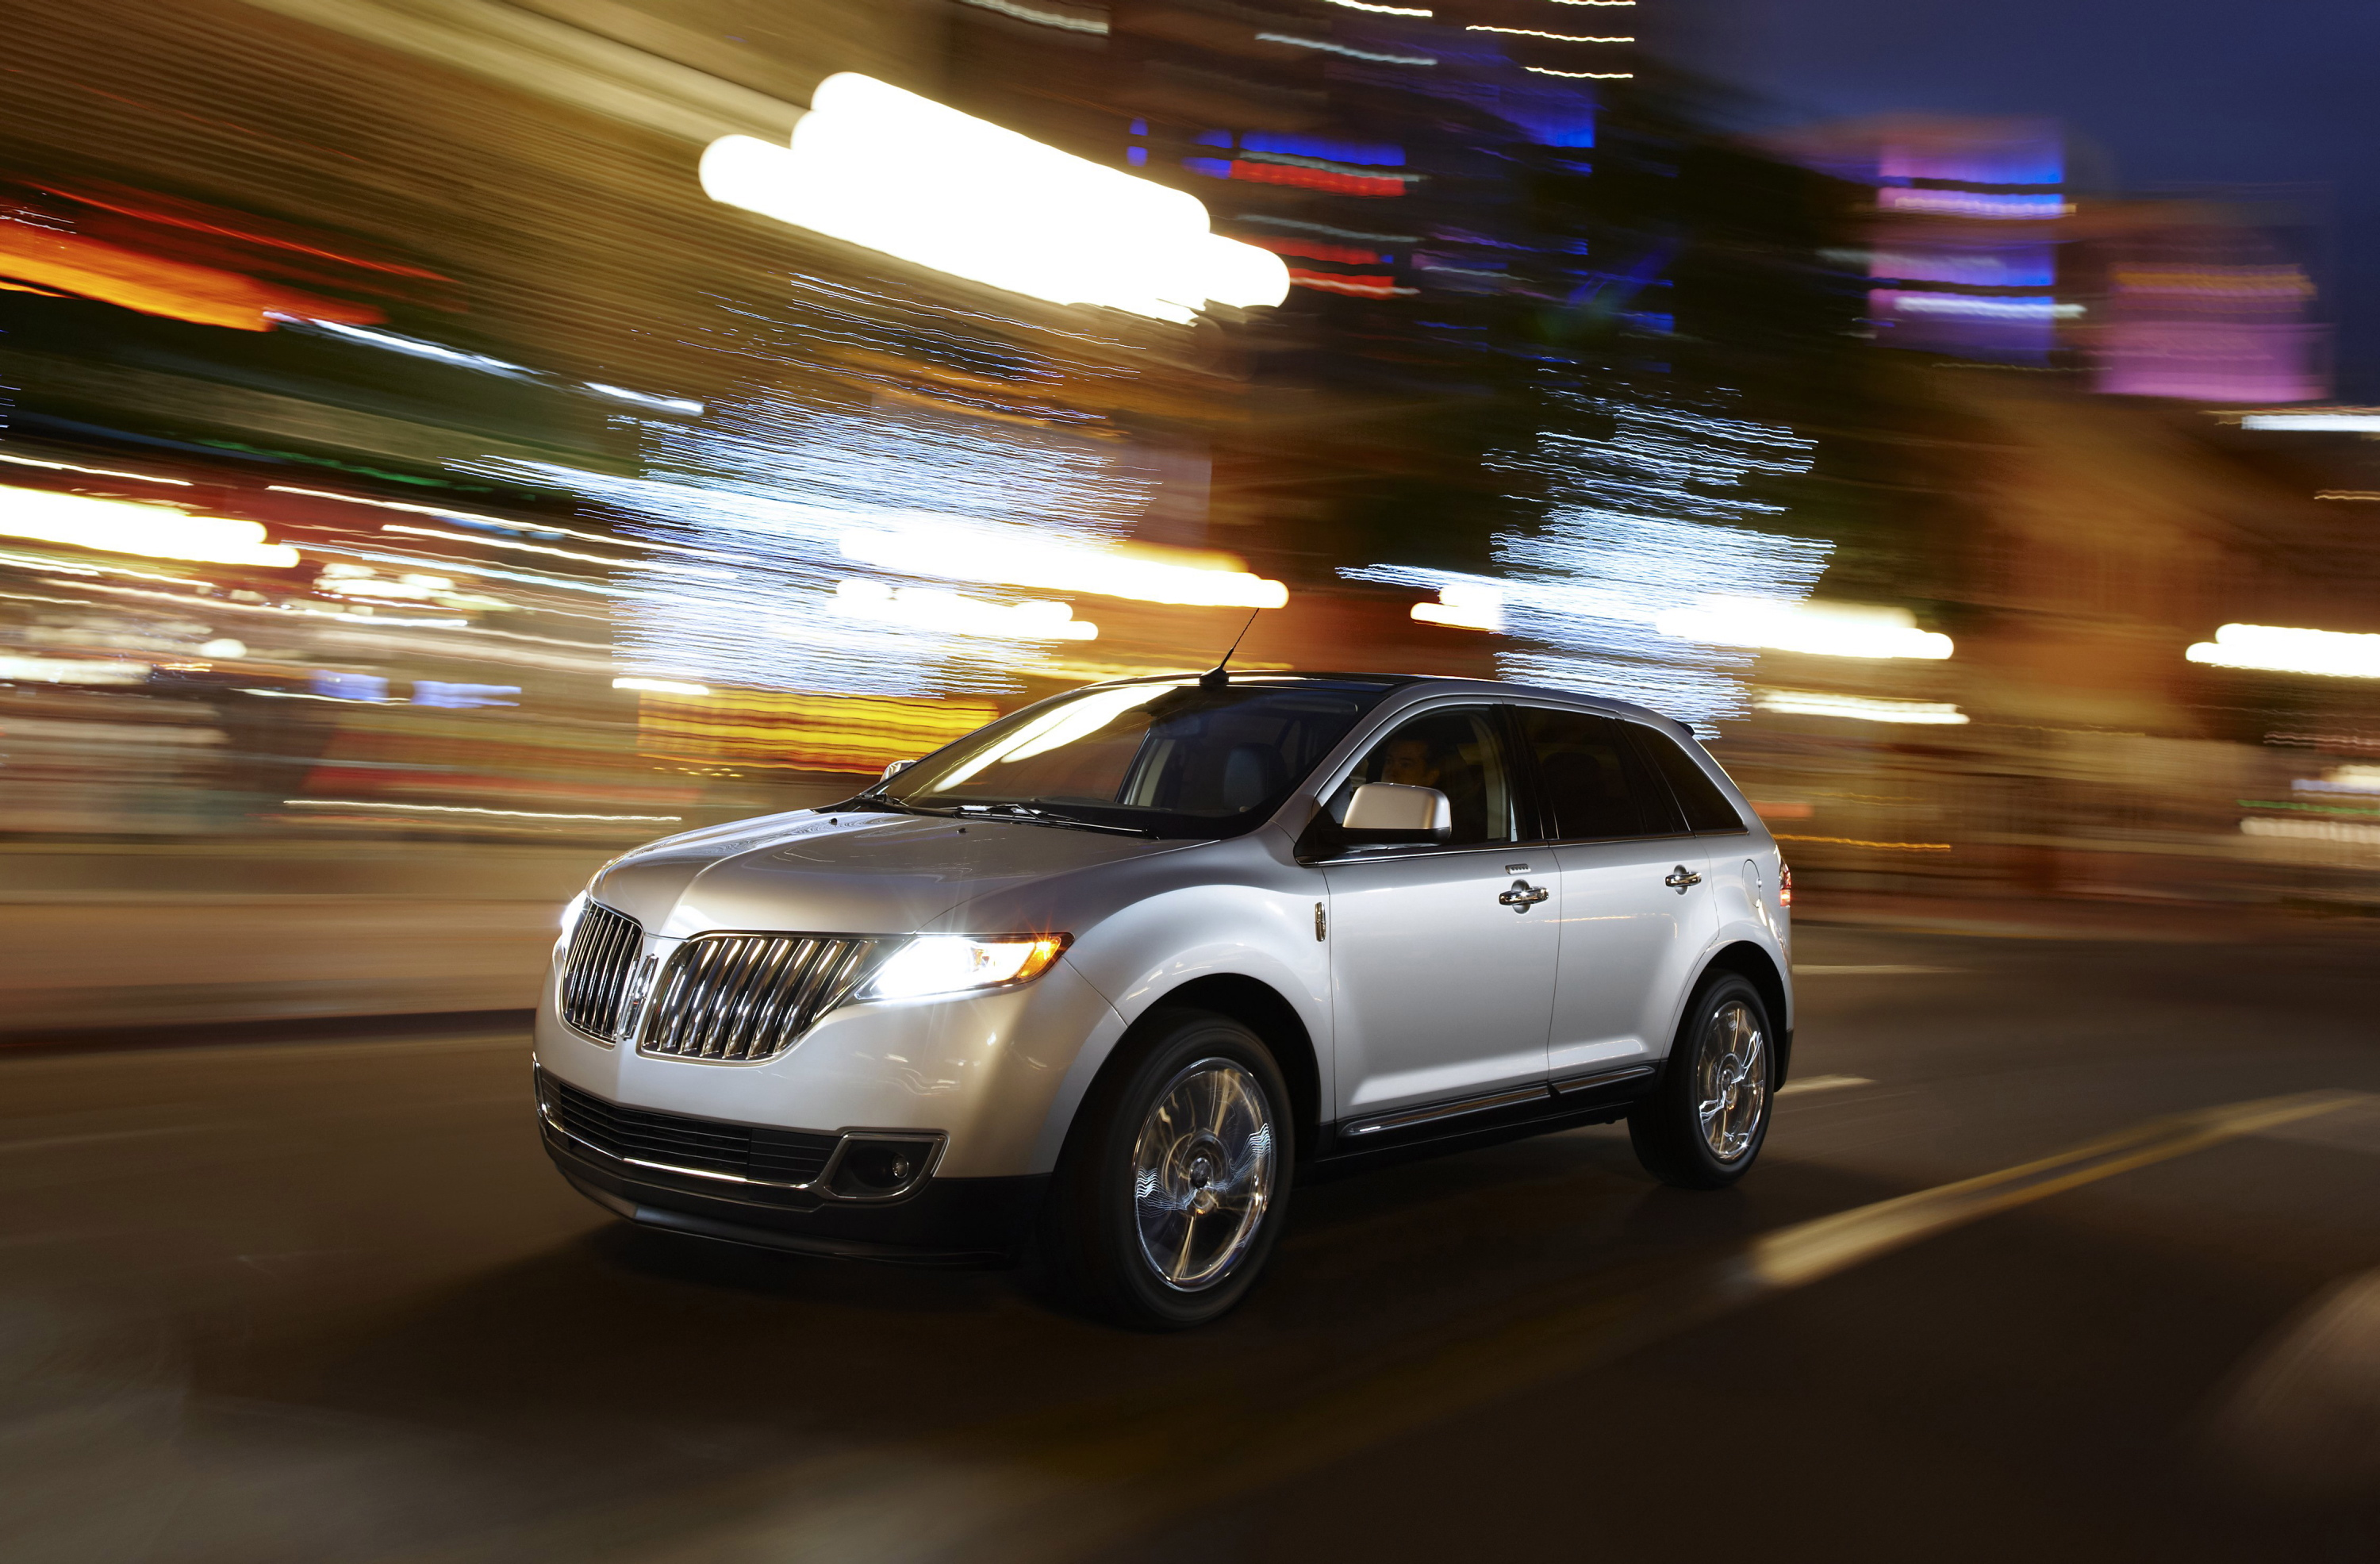 2011 lincoln mkx epa certification road reality. Black Bedroom Furniture Sets. Home Design Ideas